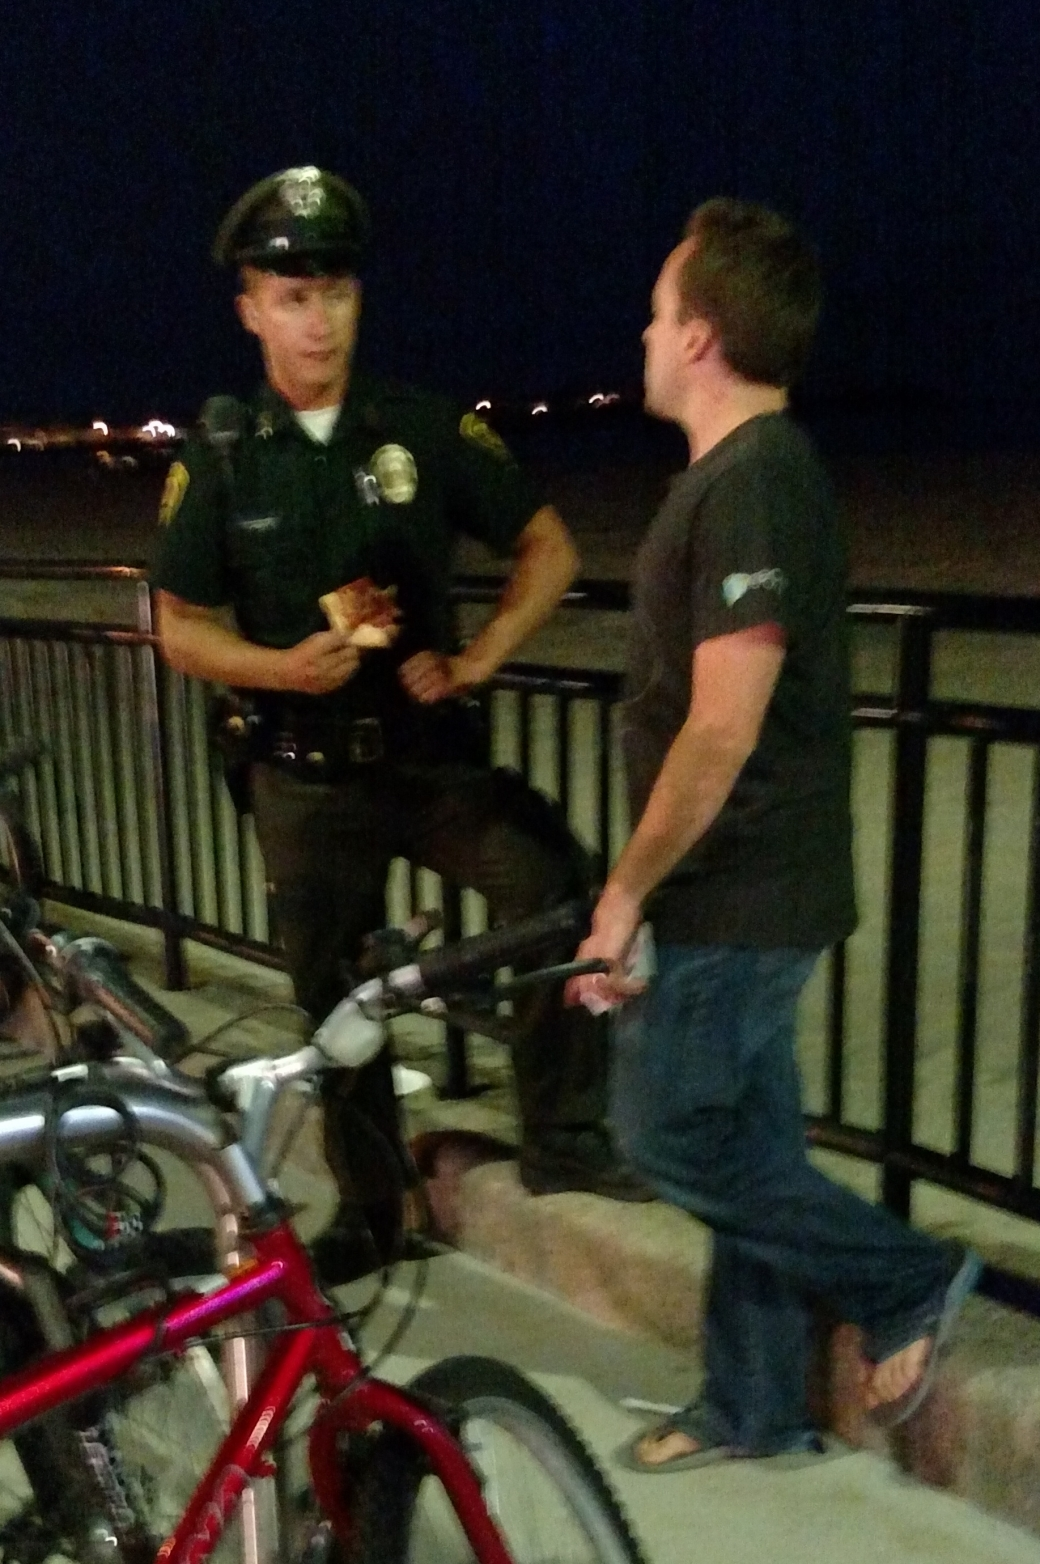 Typically the Police leave us alone, which is much better than them kicking us out. But Matt got into a gospel conversation with this Officer while he was on break! Praise God!